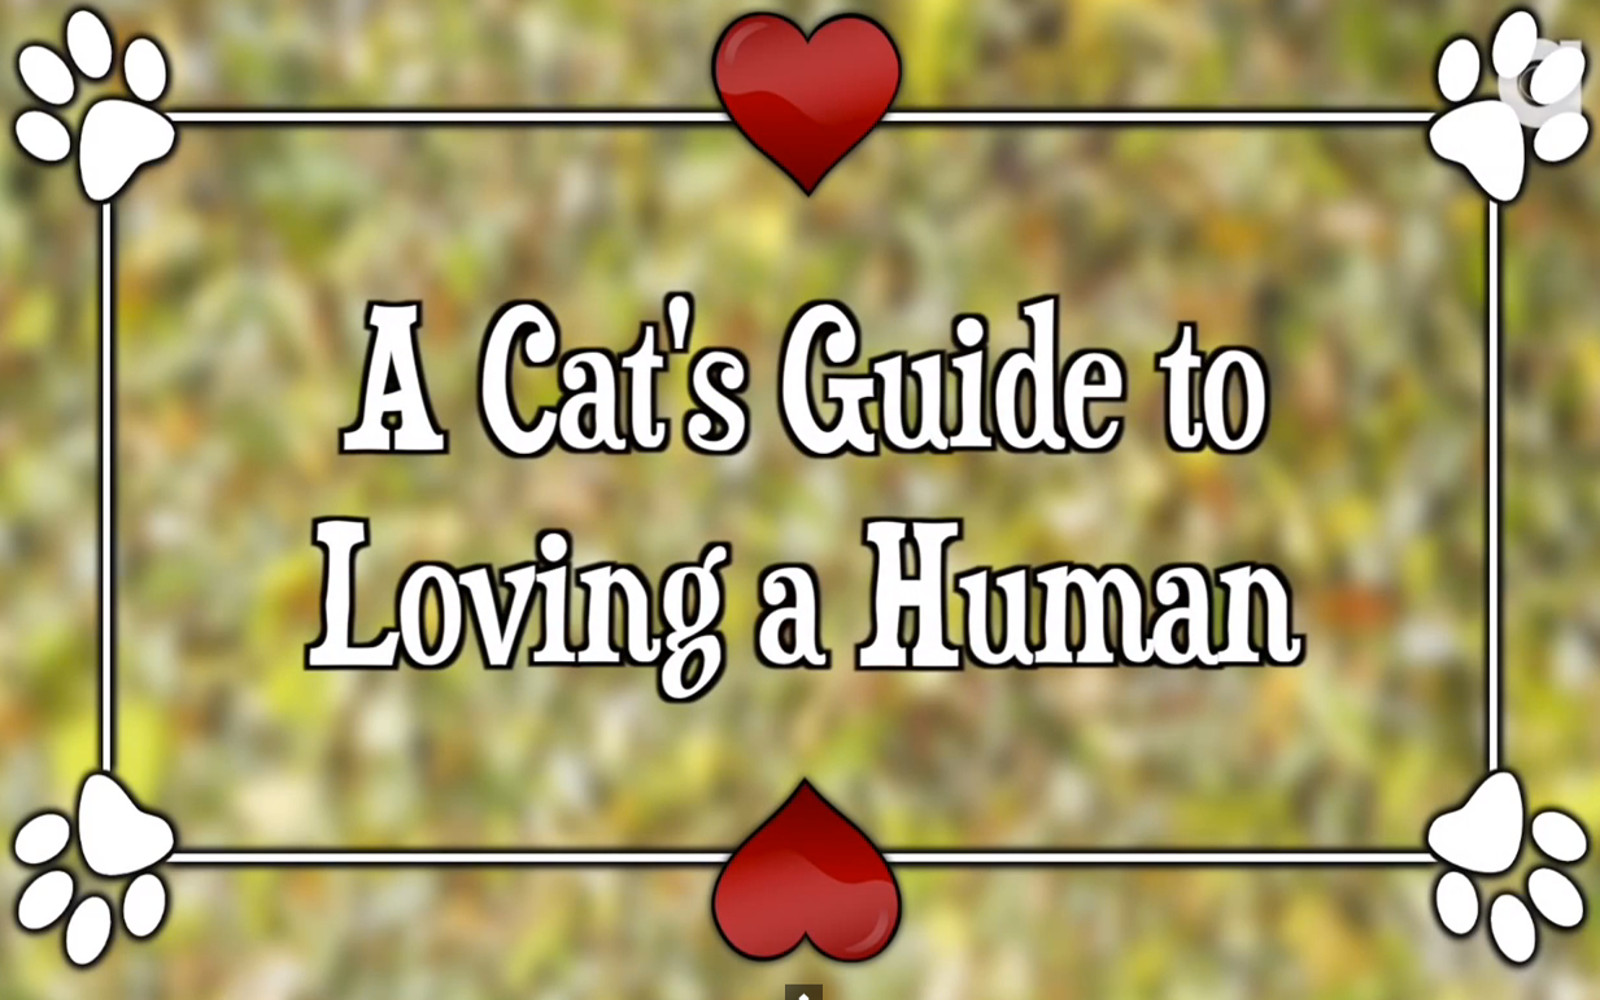 A Cat's Guide to Loving a Human (Video)